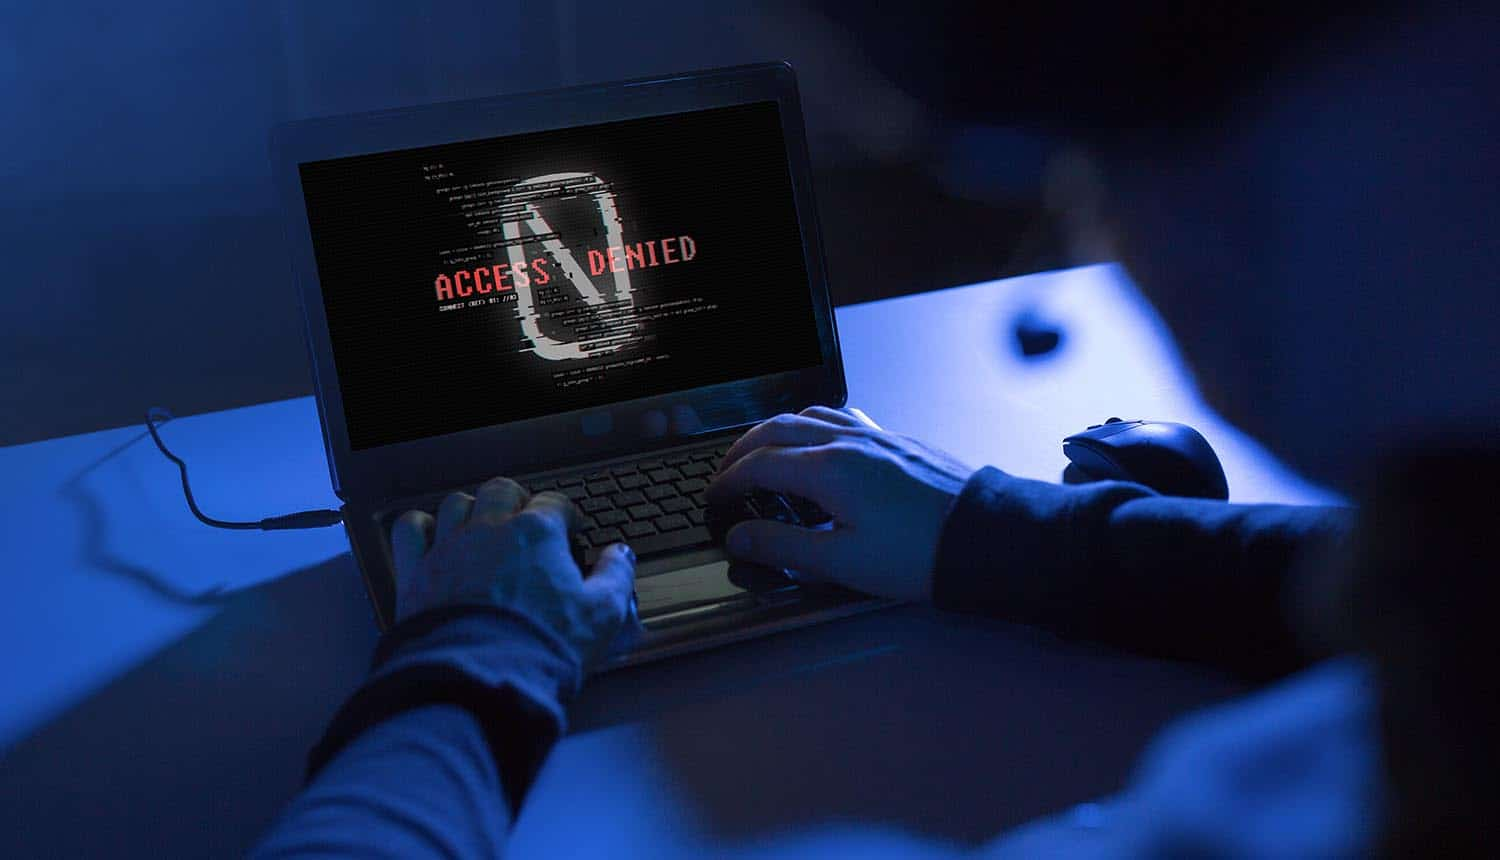 Hands of hacker with access denied message on laptop